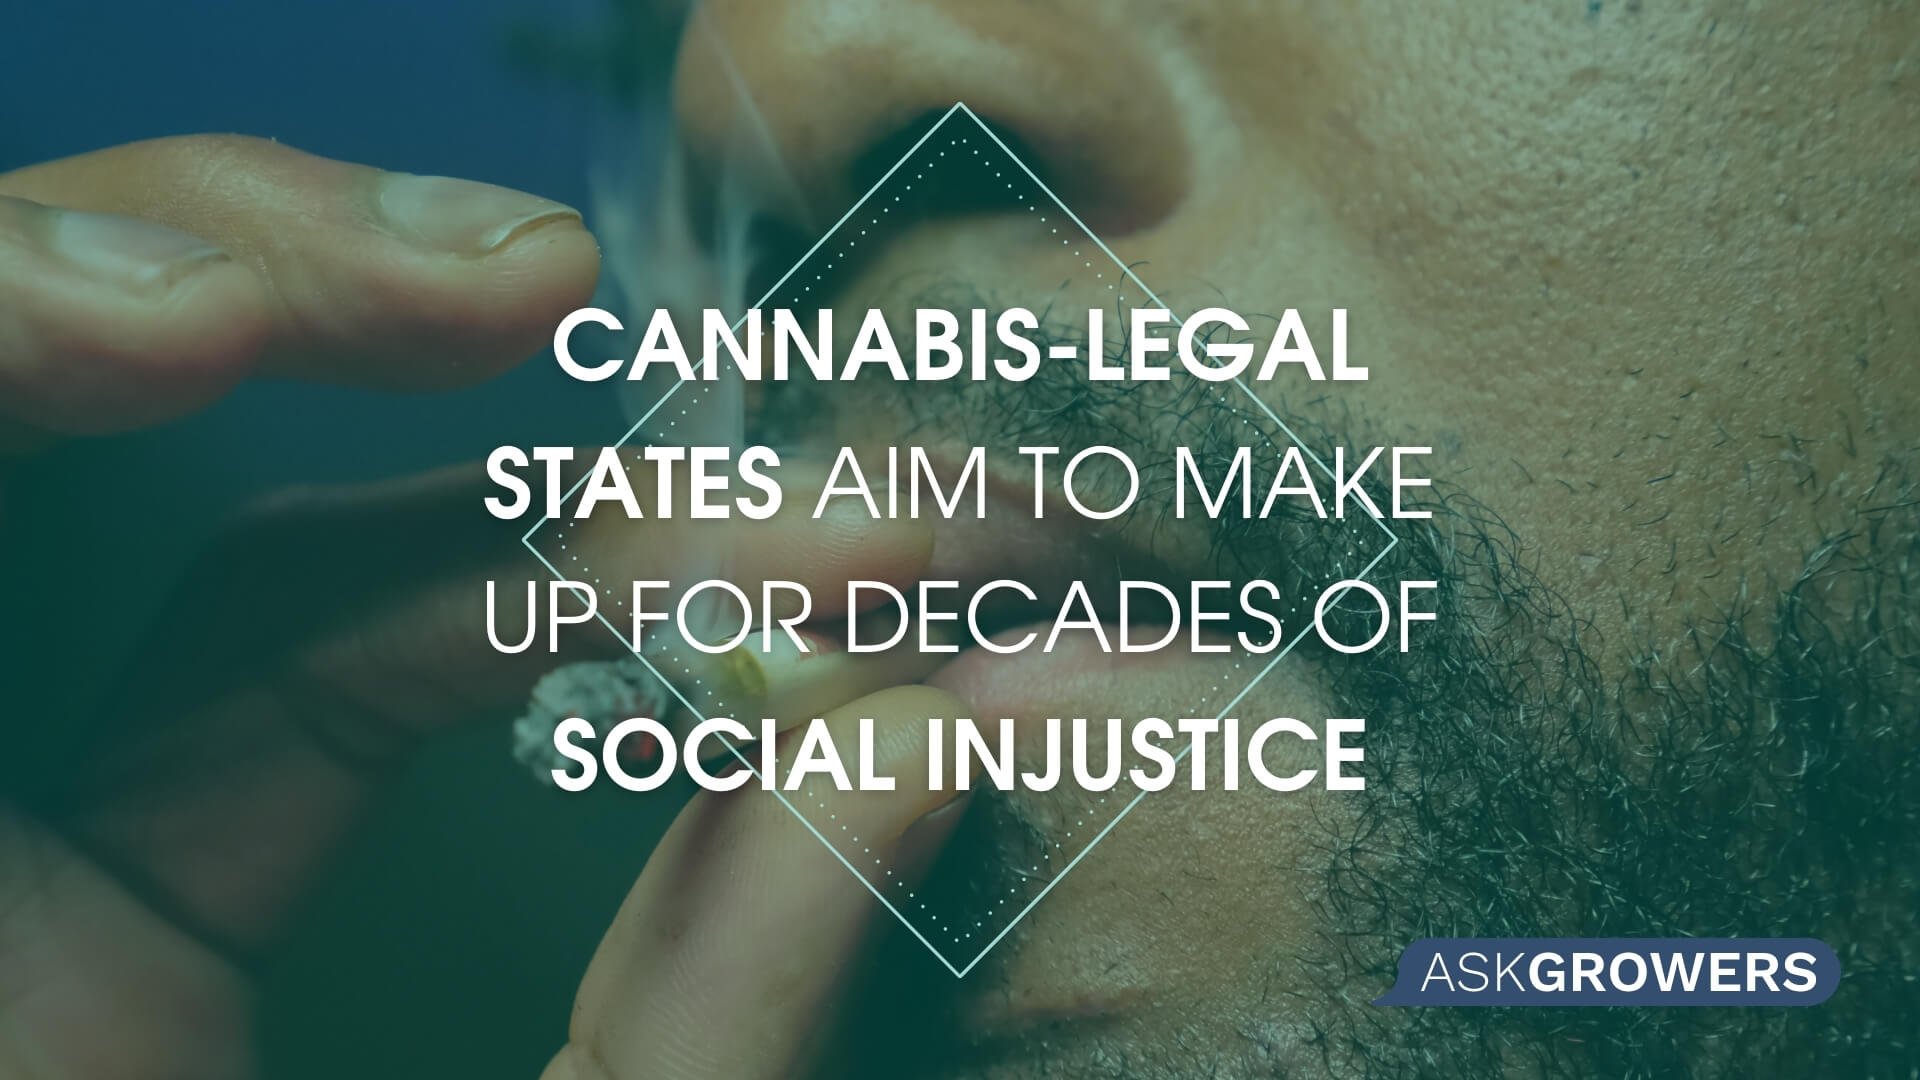 Cannabis-Legal States Aim to Make Up for Decades of Social Injustice, AskGrowers